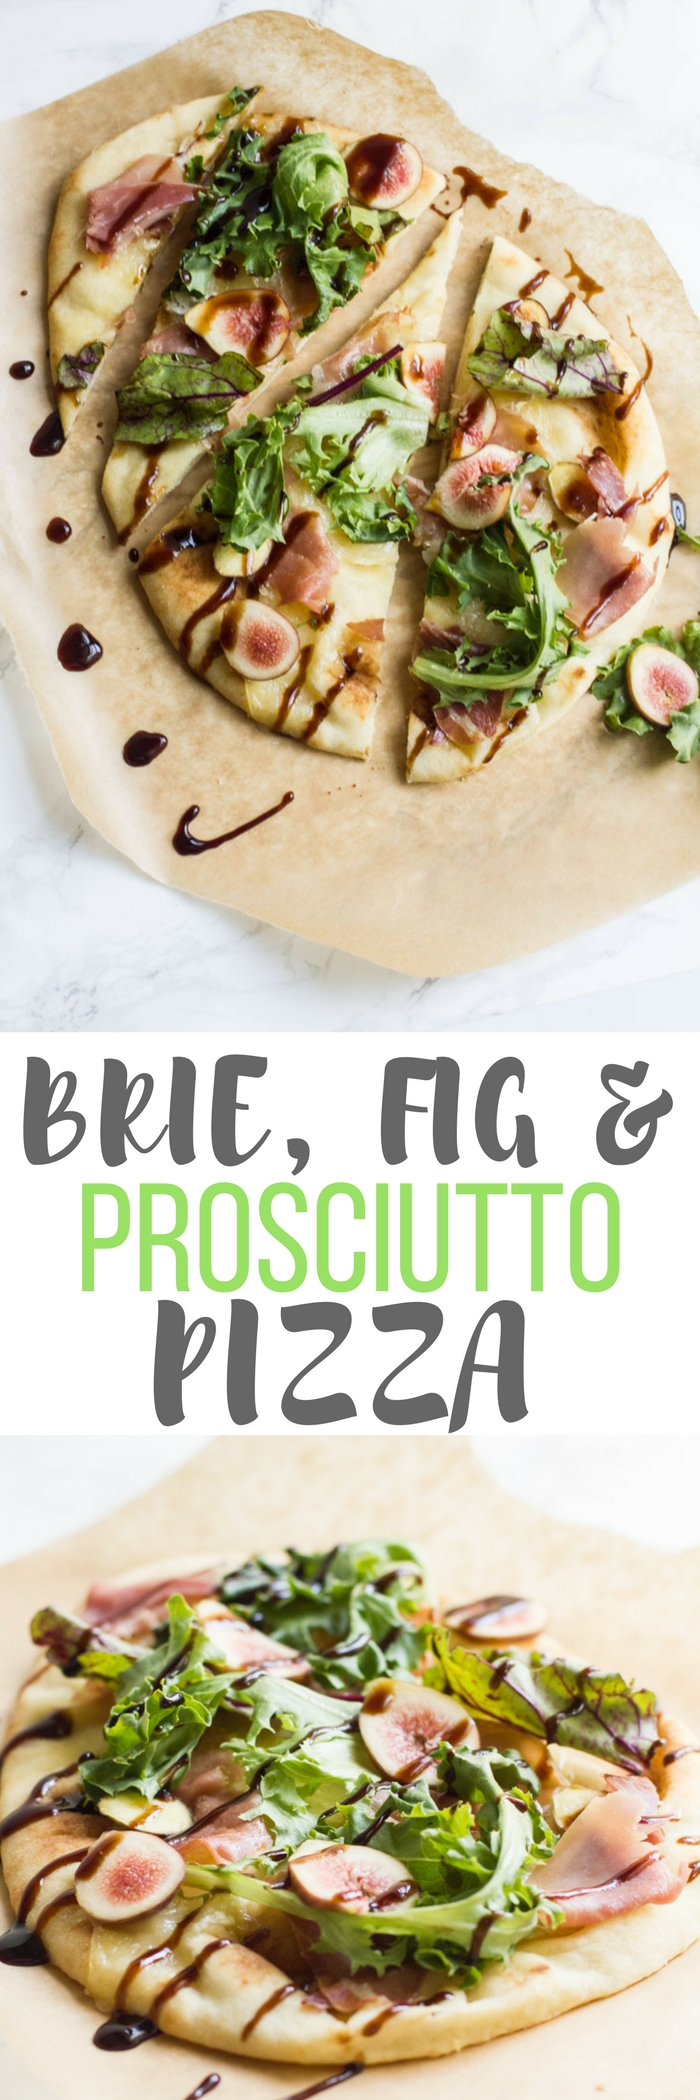 This Brie, Fig & Prosciutto Pizza has earthy, sweet, salty and cheesy flavors in every bite. It makes the perfect lunch or light dinner.